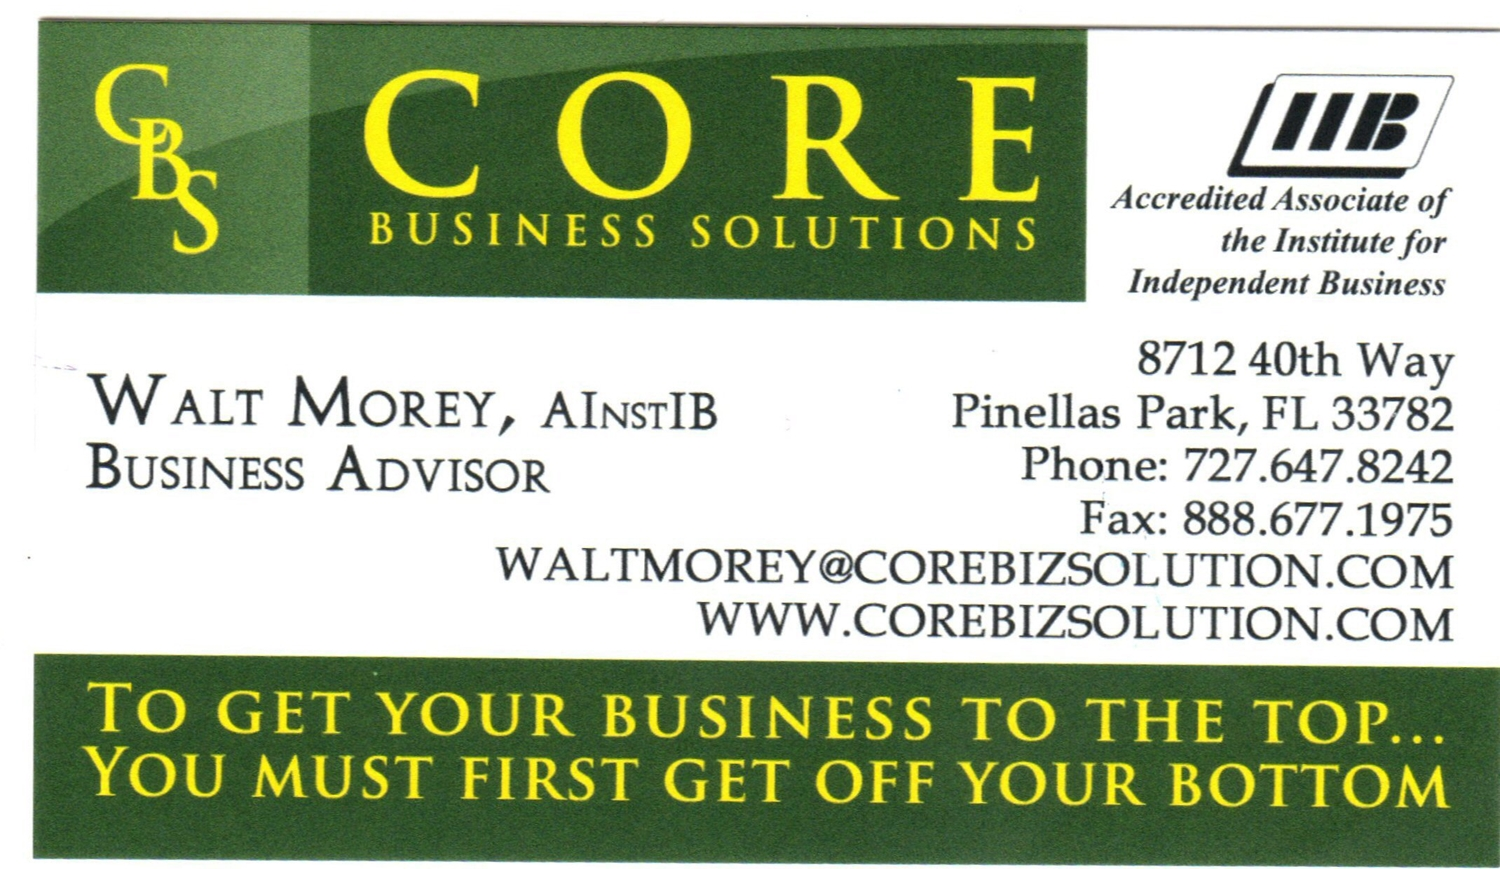 Business card of Core Business Solutions